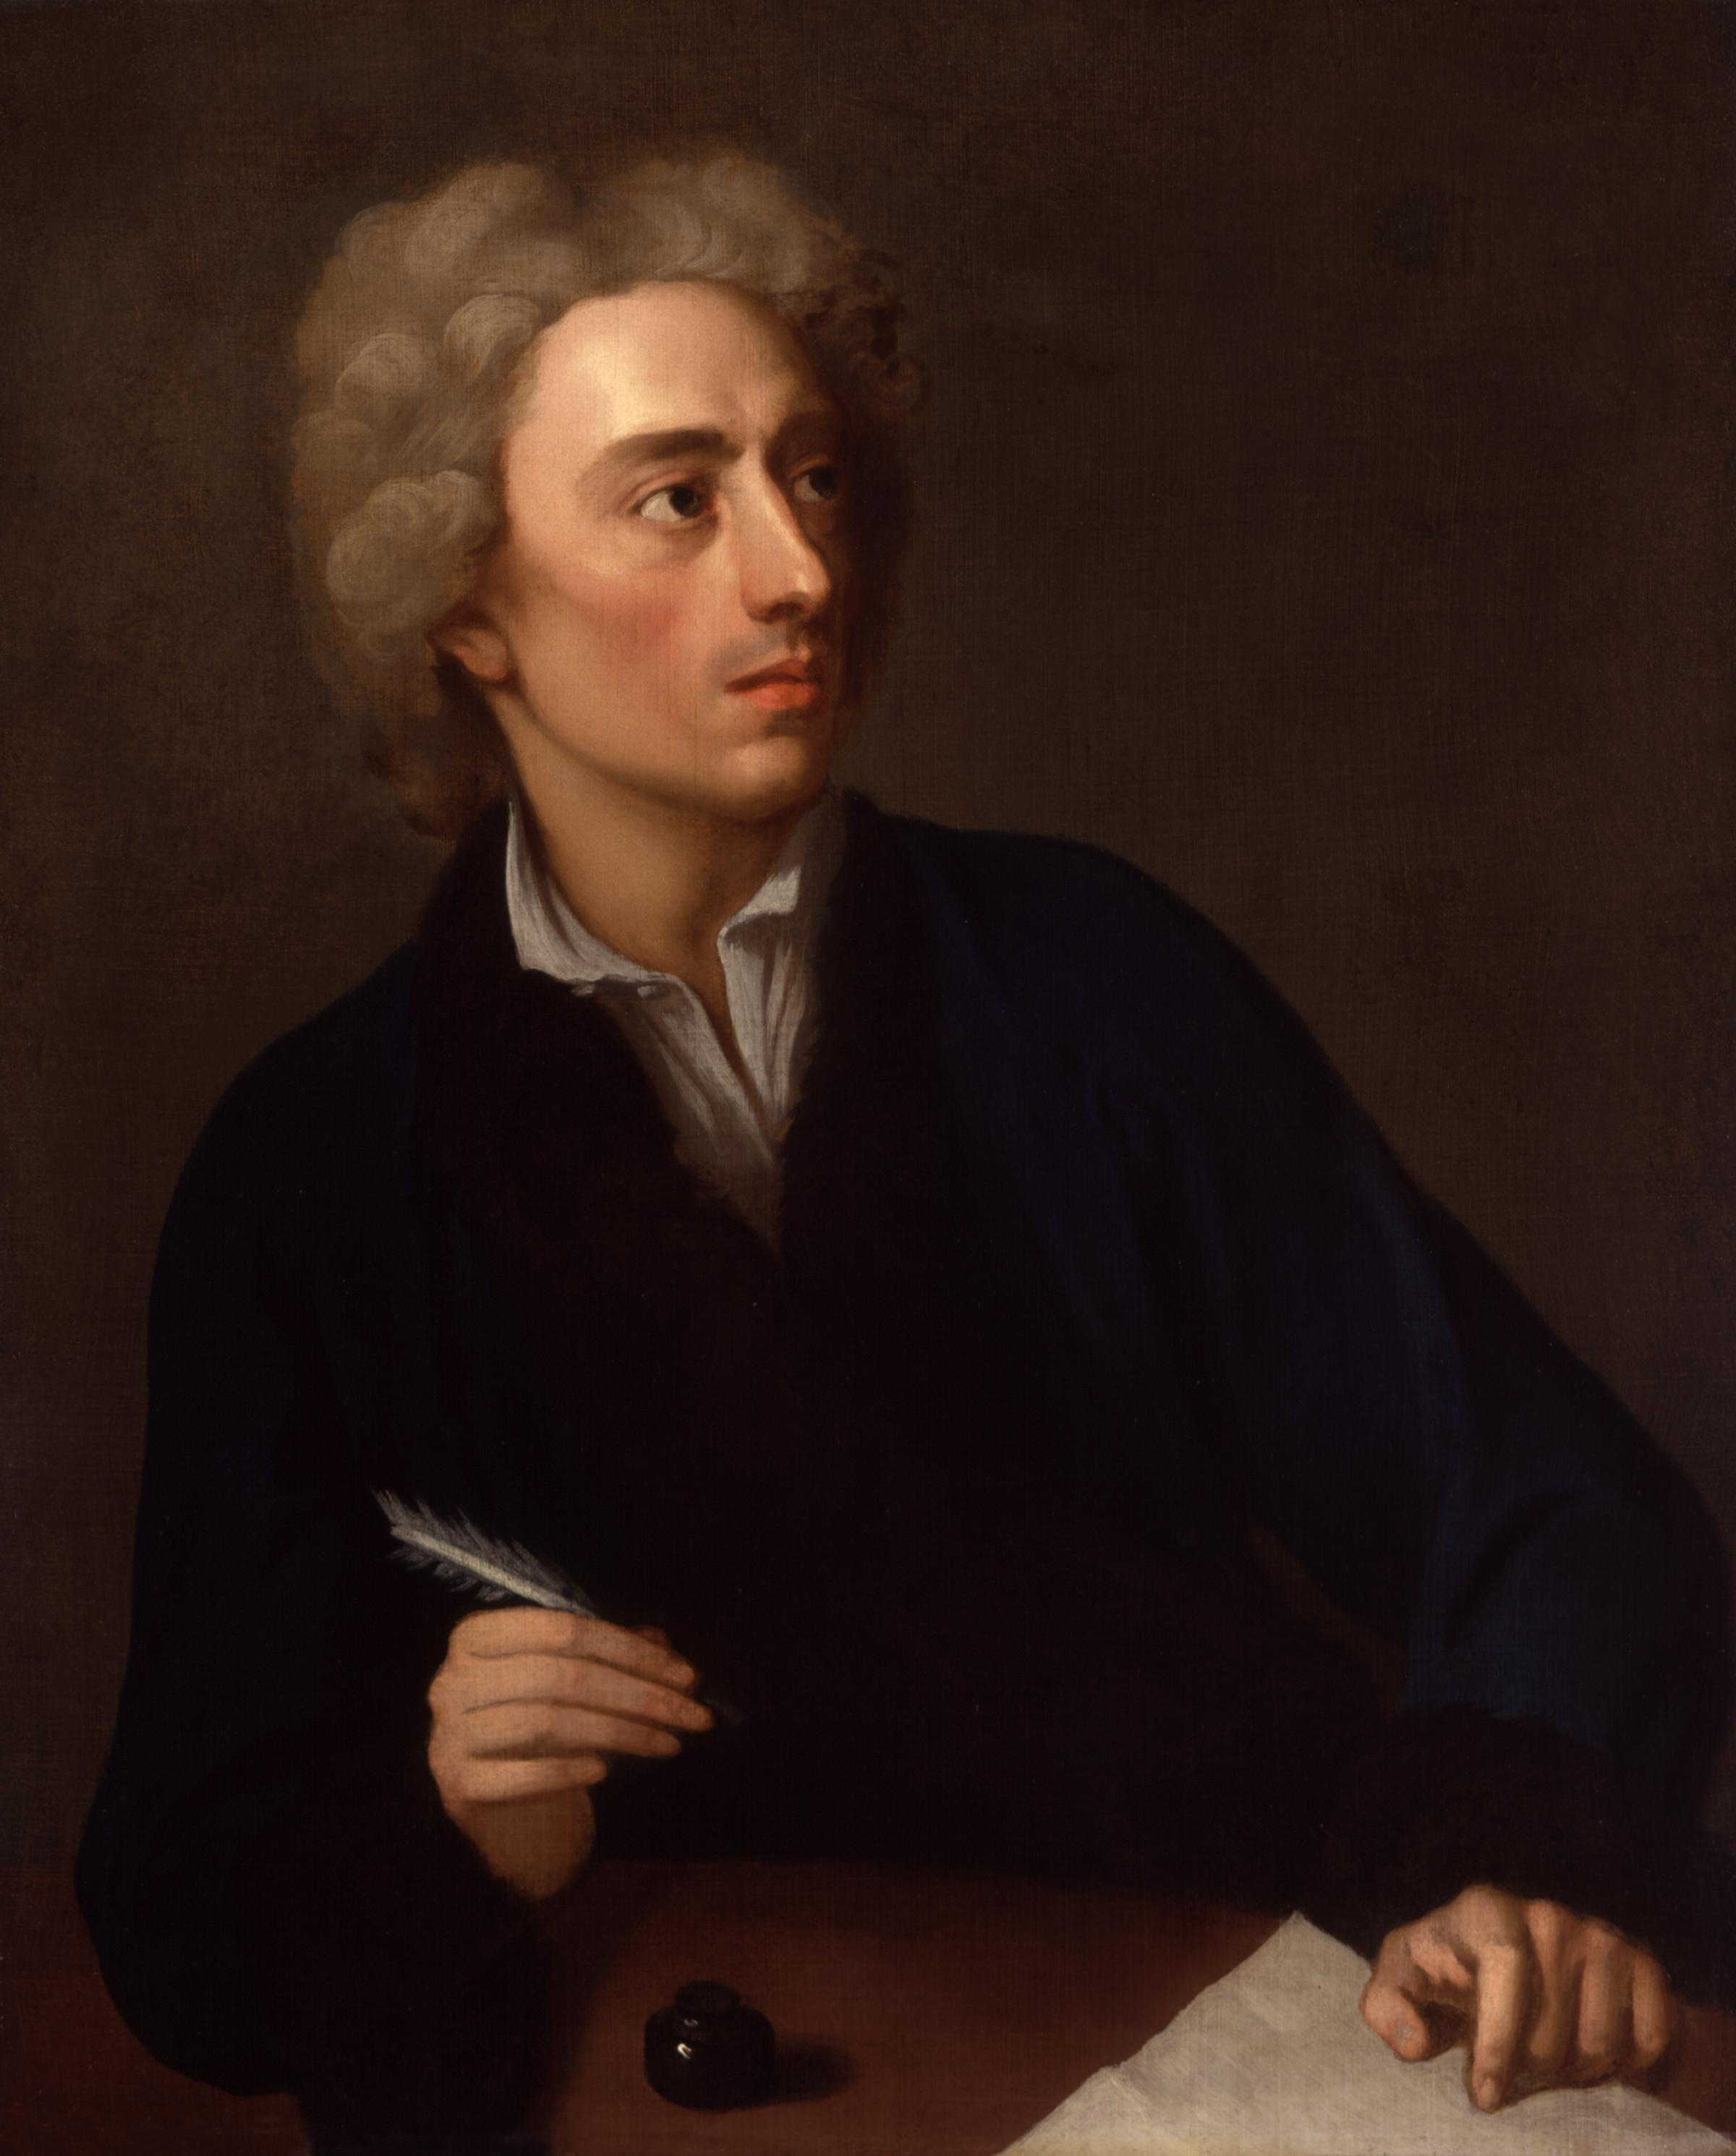 Alexander Pope probably dreaming up some of these romantic verses.